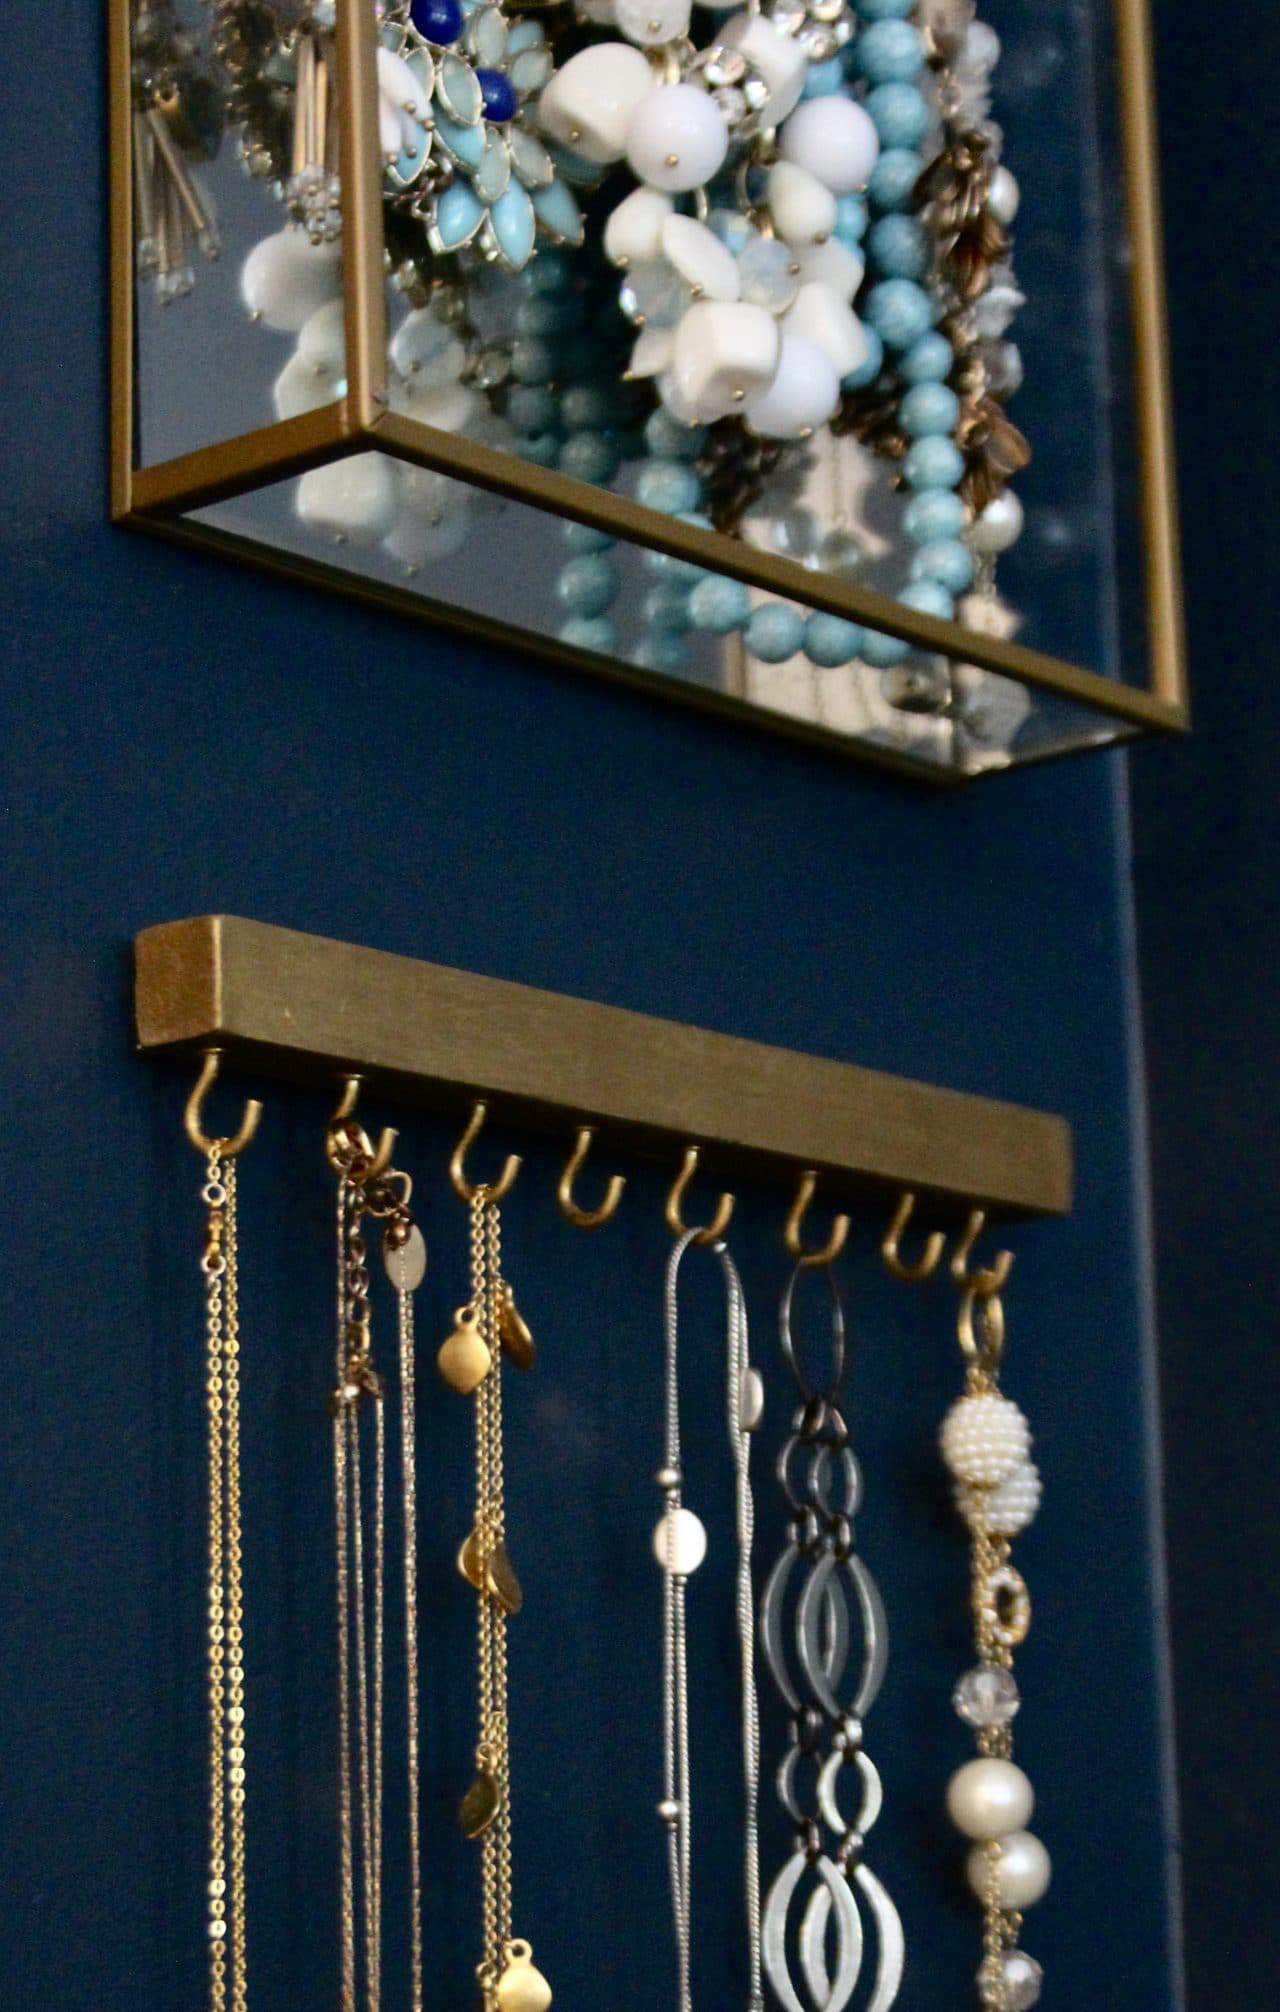 DIY  necklace organizer featured on Songbirdblog